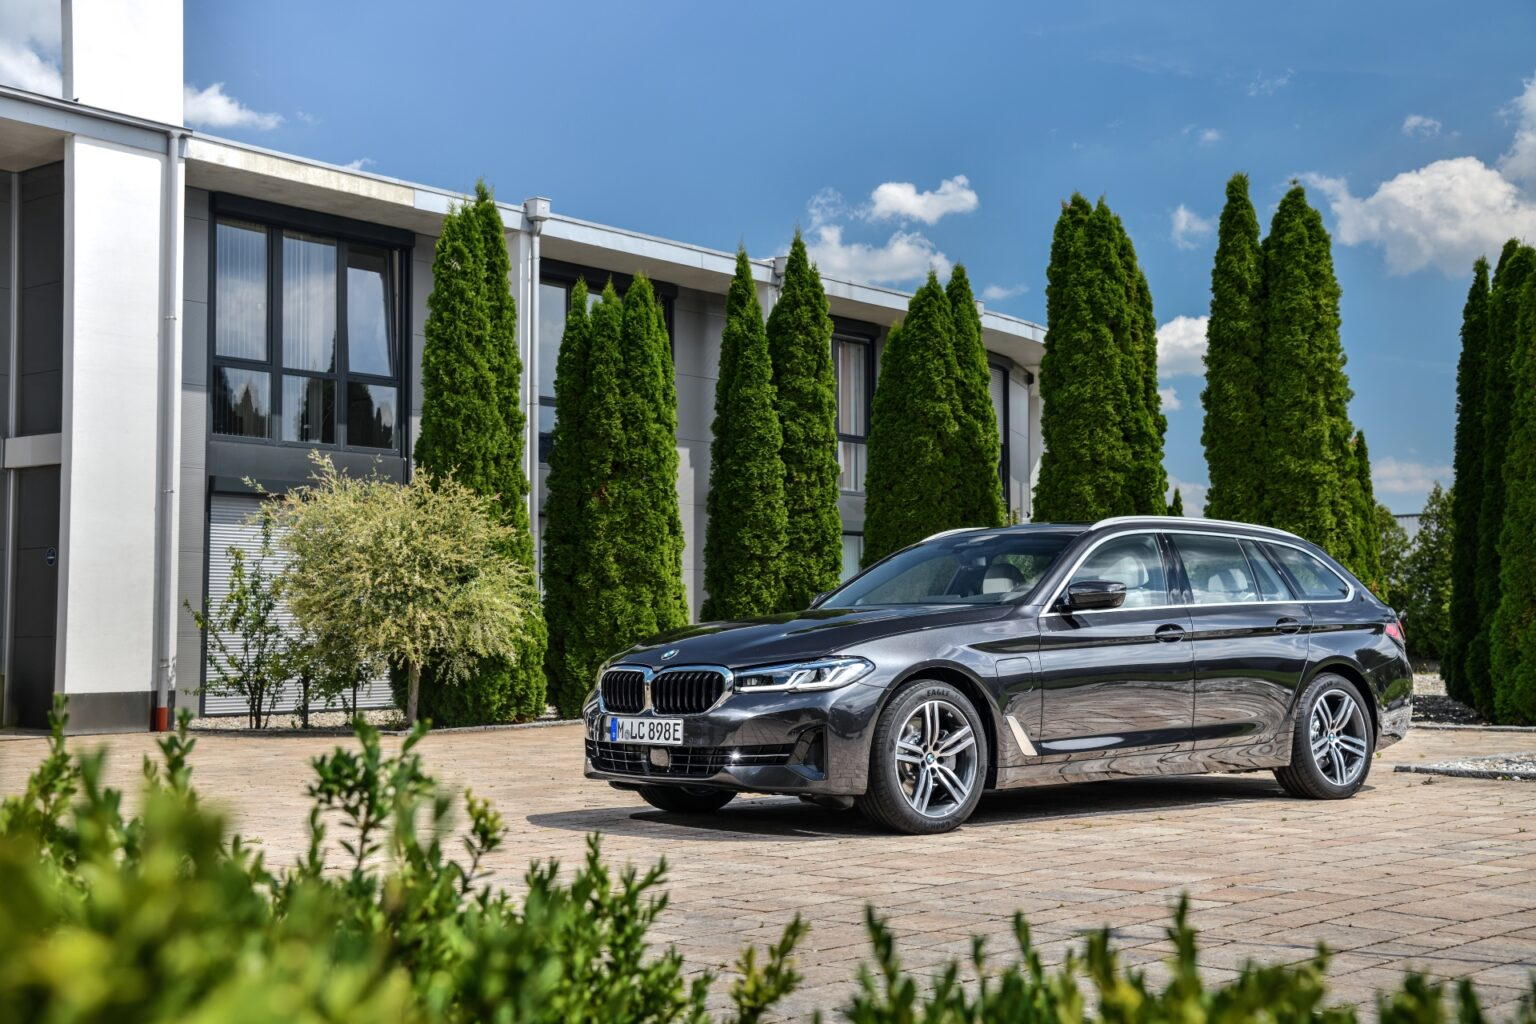 Fall 2020 updates: New BMW 5 Series plug-in hybrid variants added